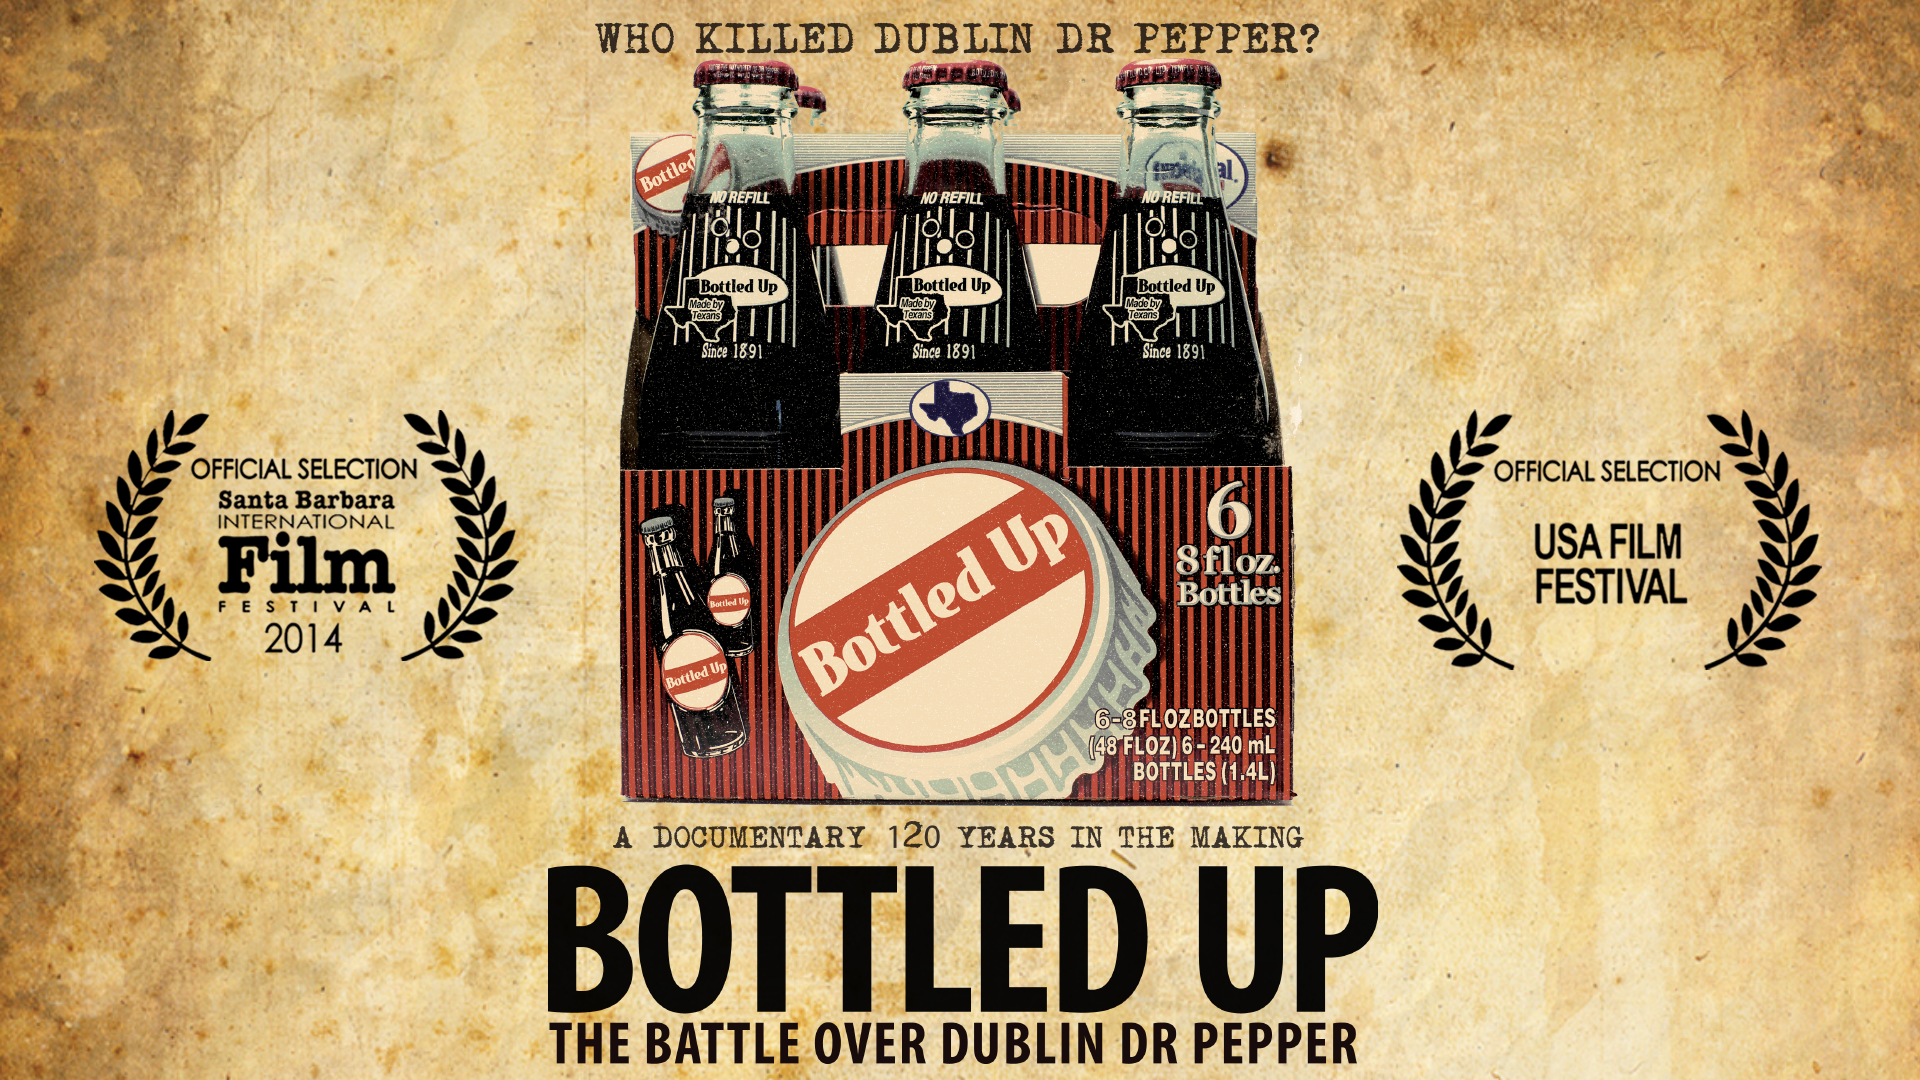 Bottled Up - The Battle Over Dublin Dr Pepper